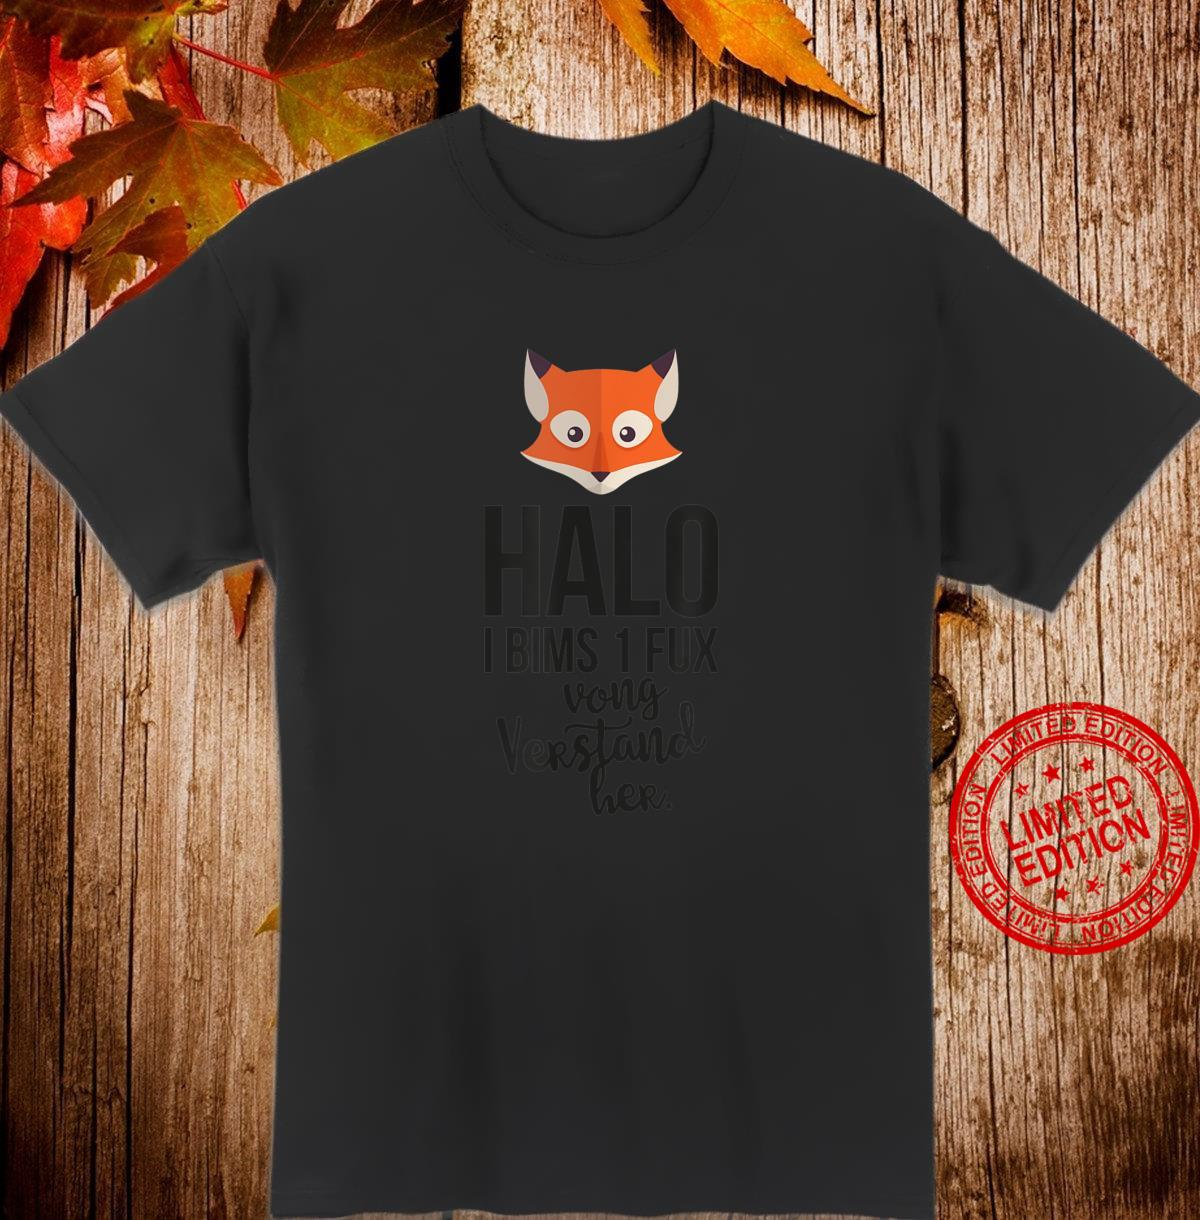 Halo I bims 1 Fux vong Verstand her Lustiges Fun Party Shirt